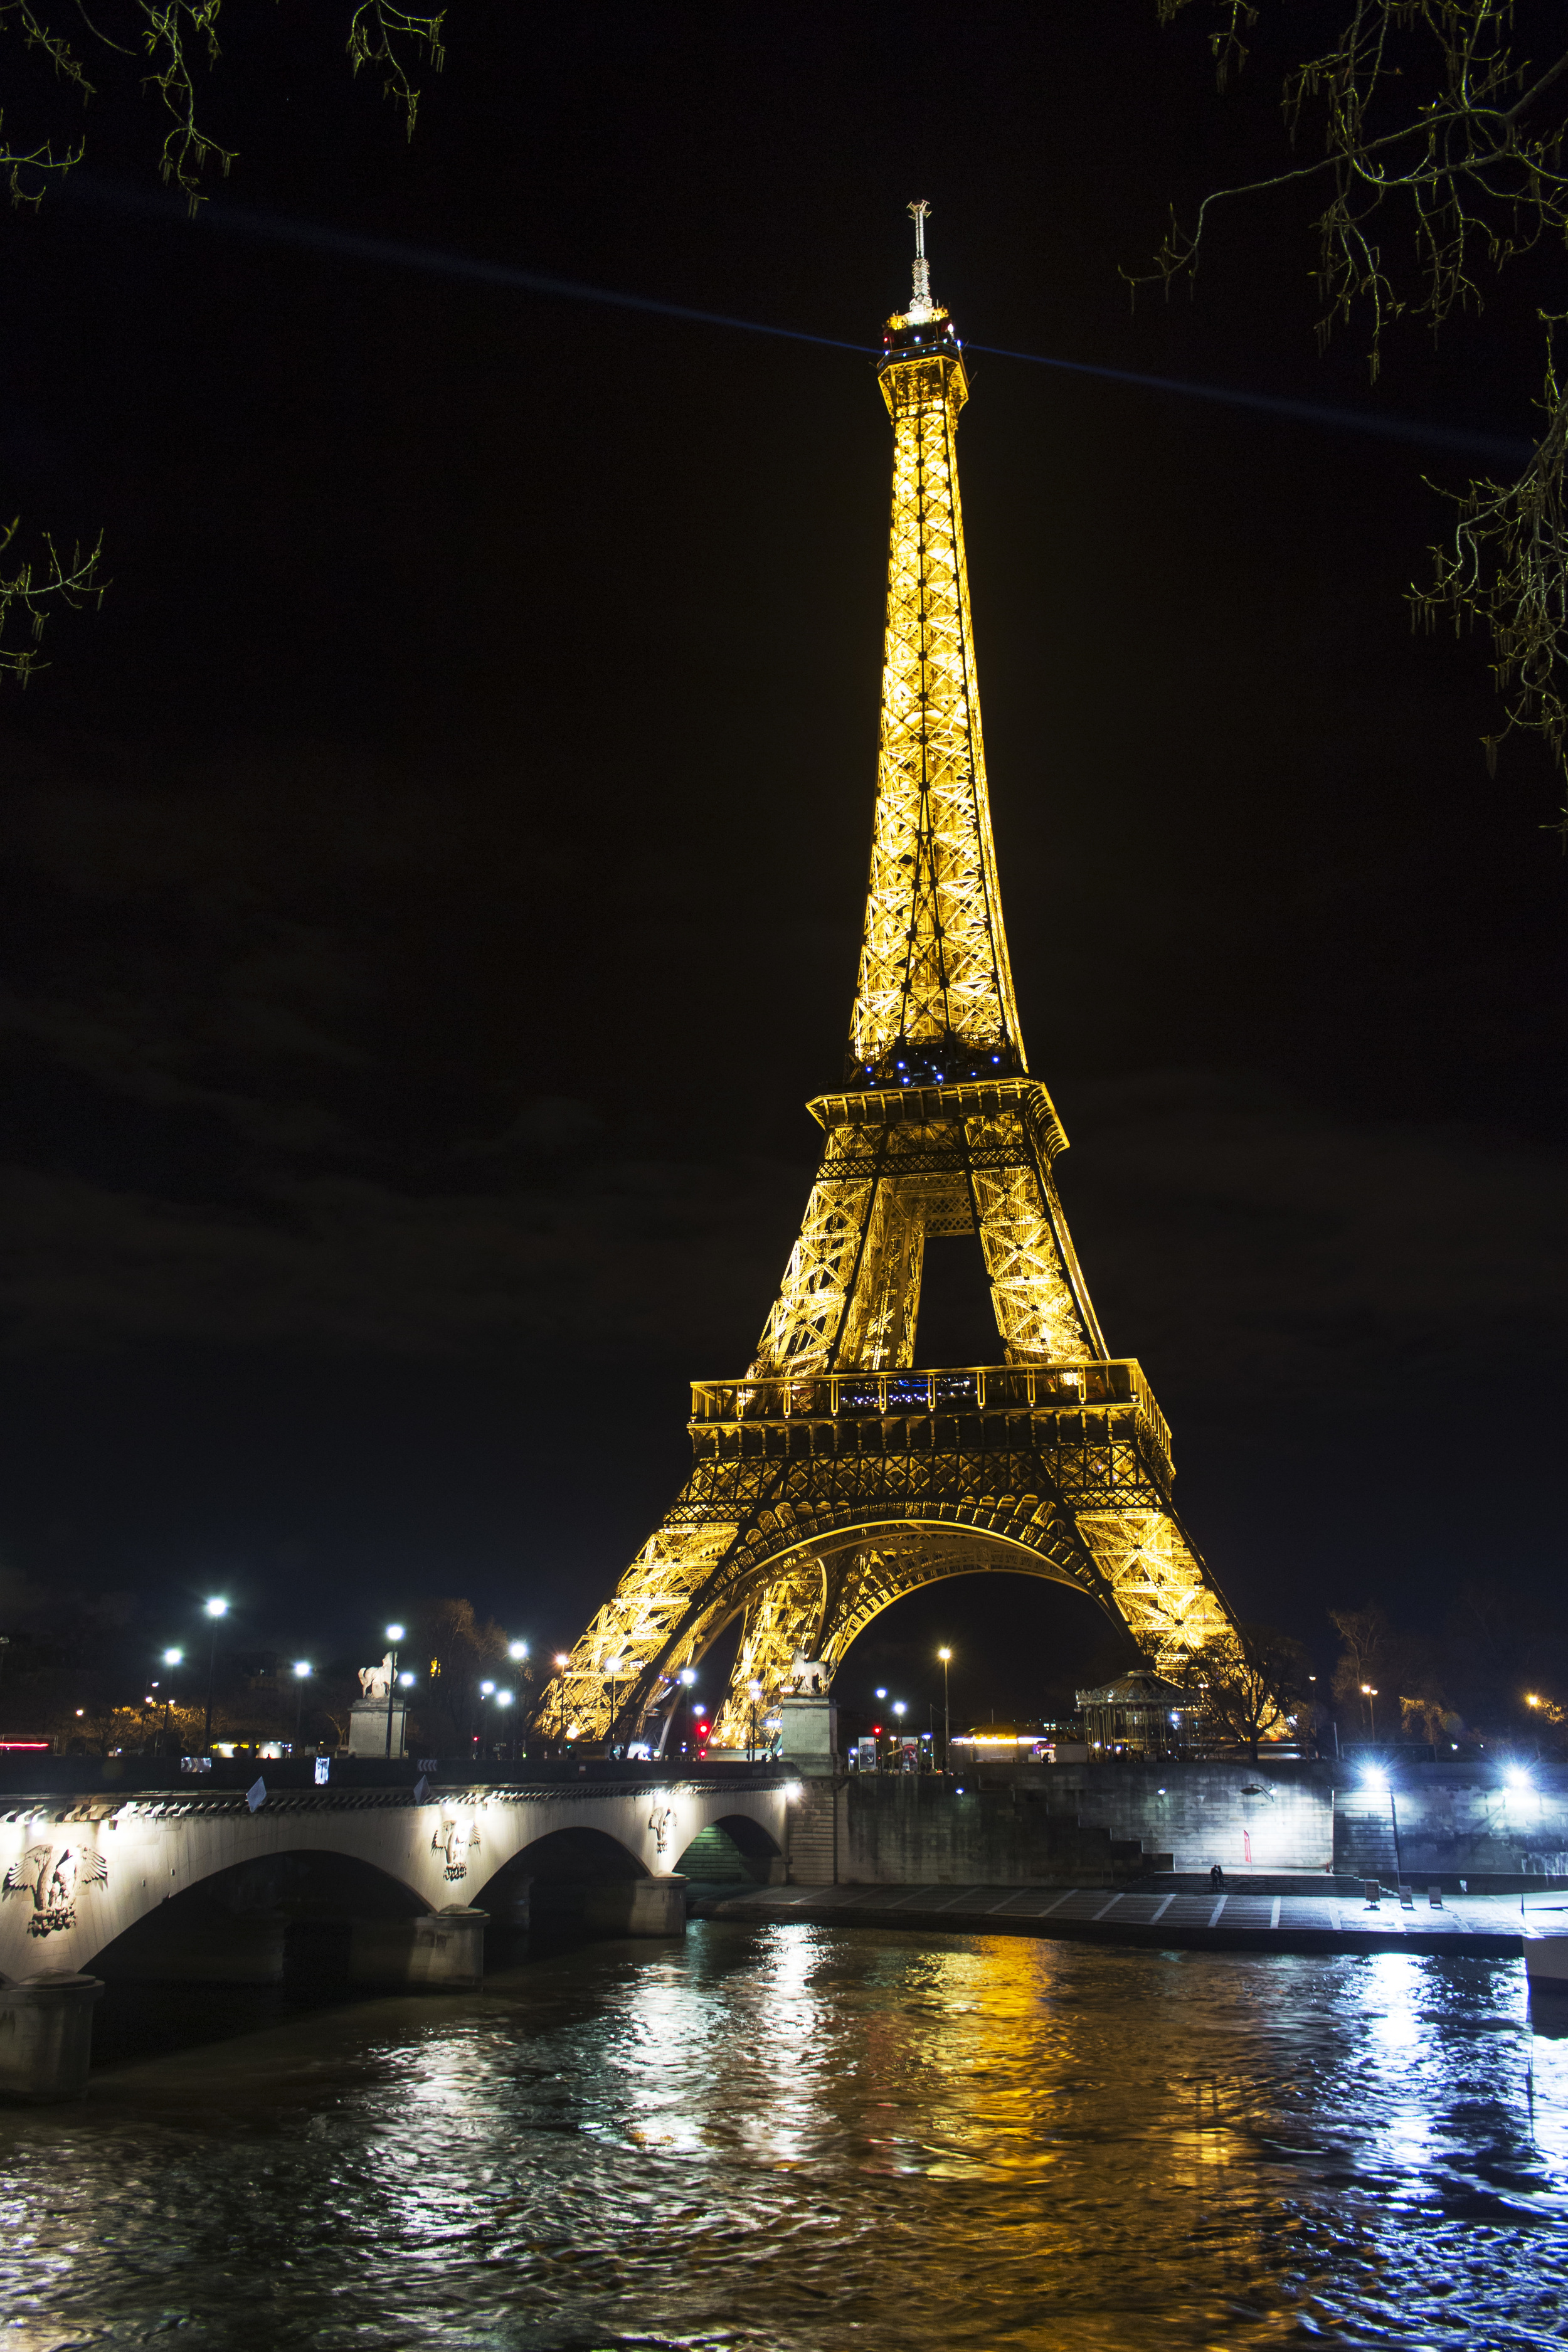 I then got one more angle before heading back. This is what the tower looks like when it isn't sparkling.